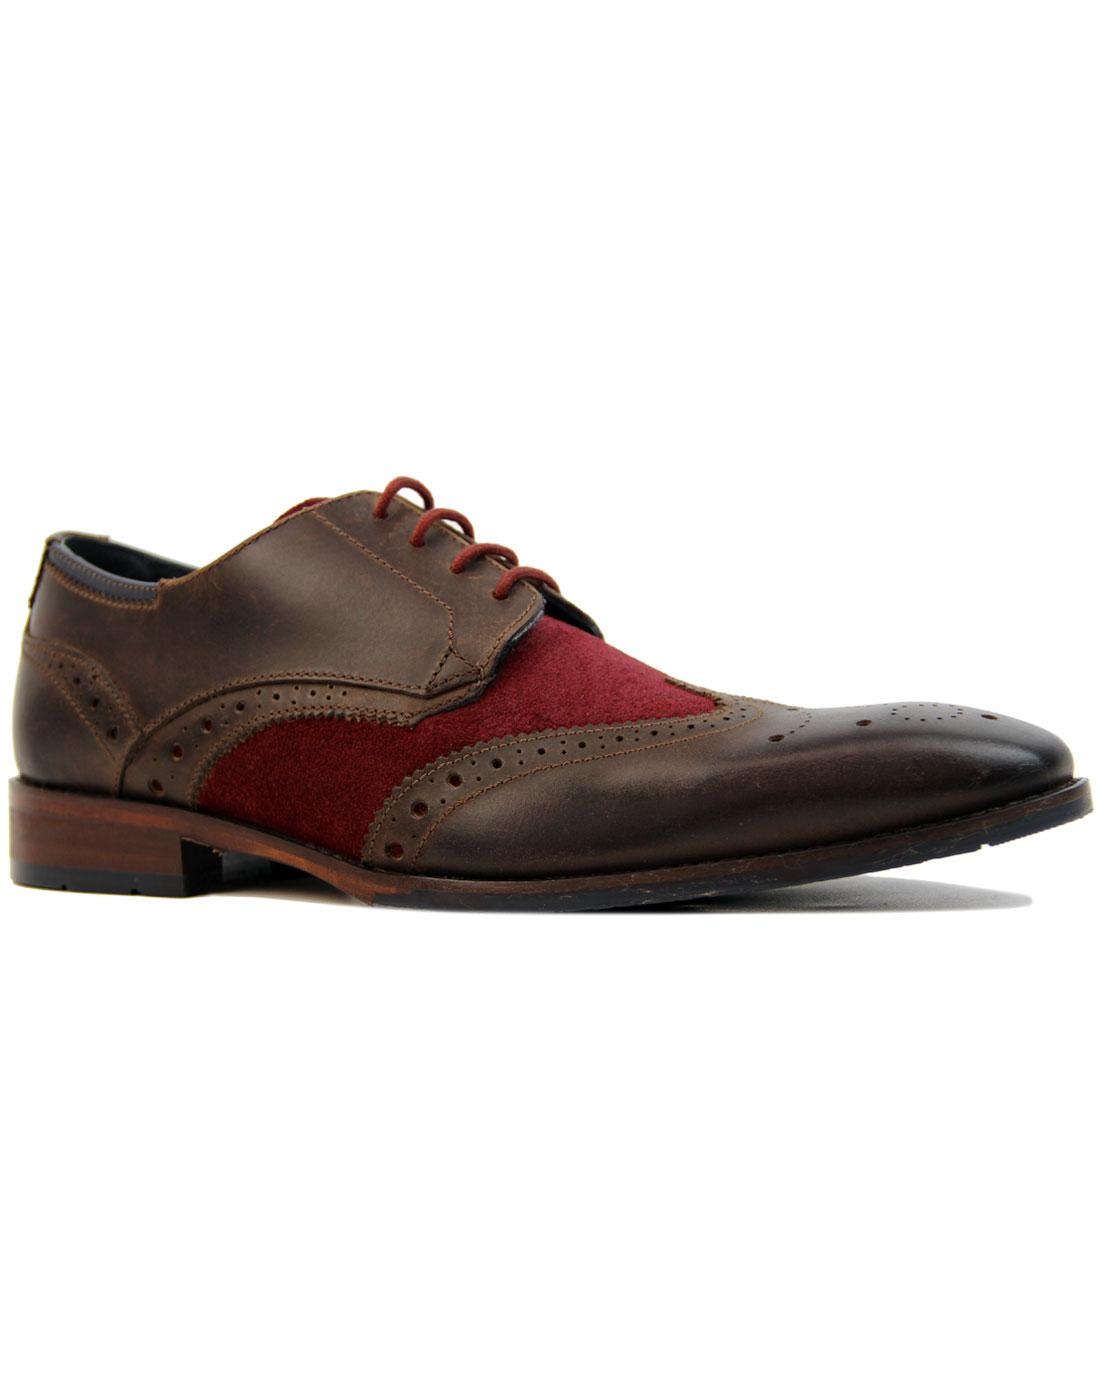 Church GOODWIN SMITH 60s Mod 2 Tone Brogues (W/B)